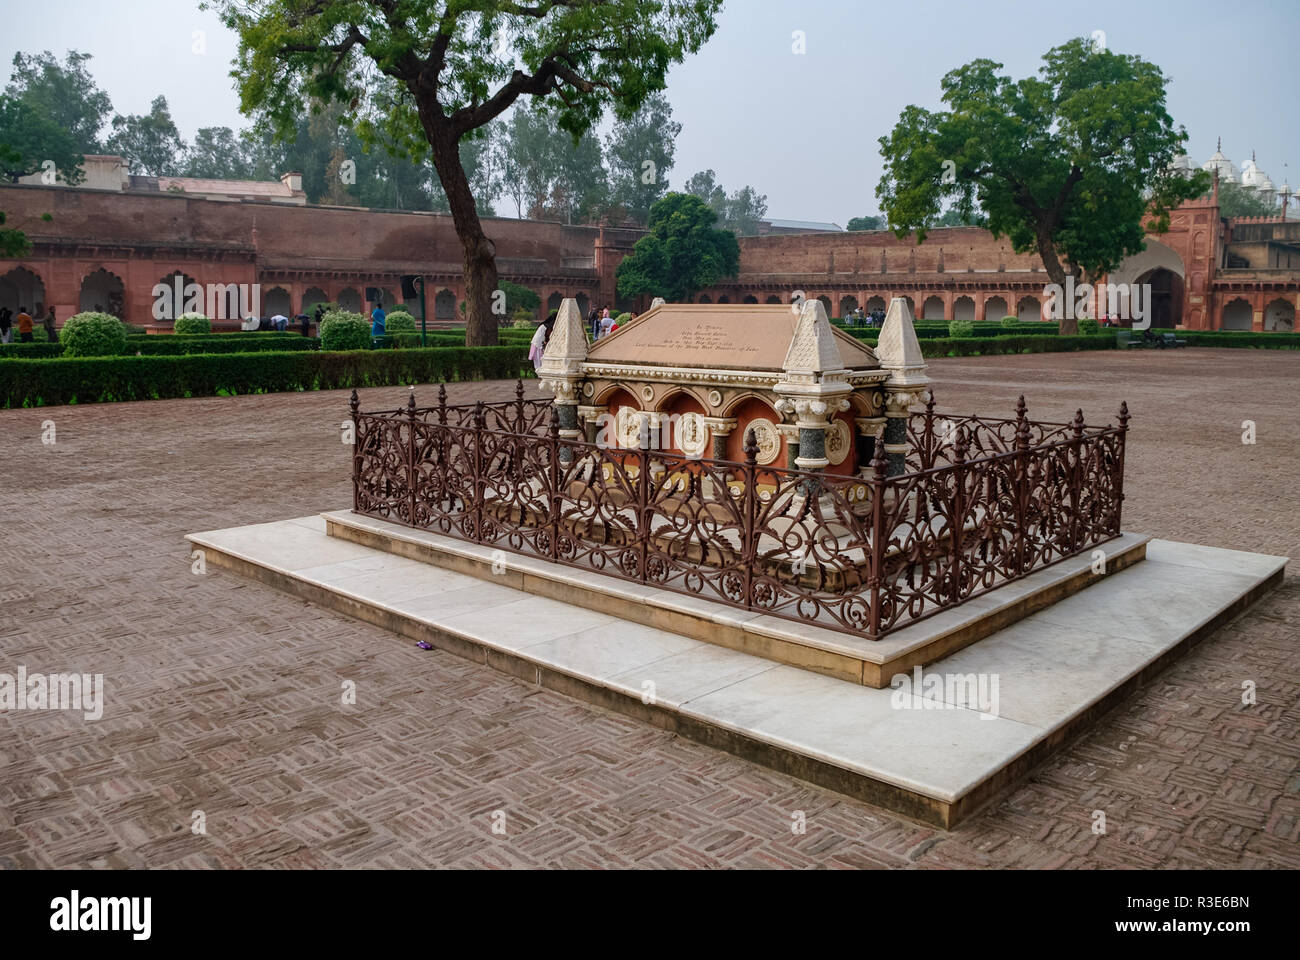 Tomb of John Russell Colvin inside Red Agra Fort. Agra, Uttar Pradesh, India - Stock Image